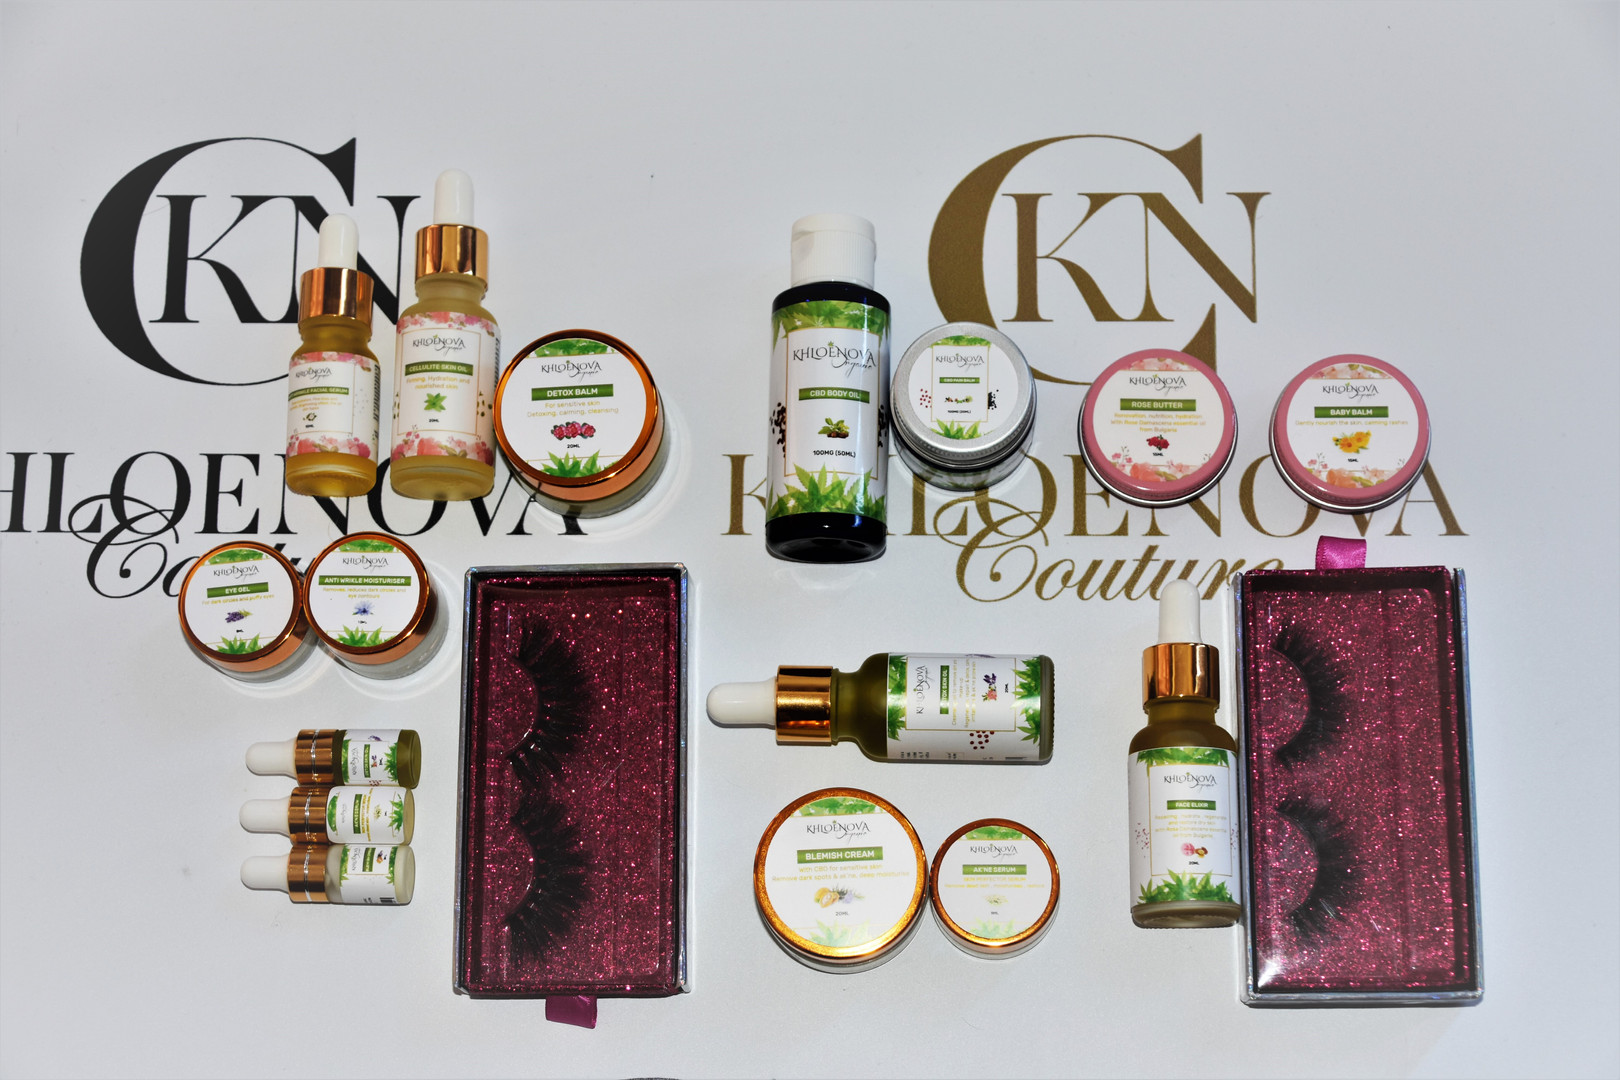 KHLOÉNOVA Beauty & Organic Skin Body Care Collections